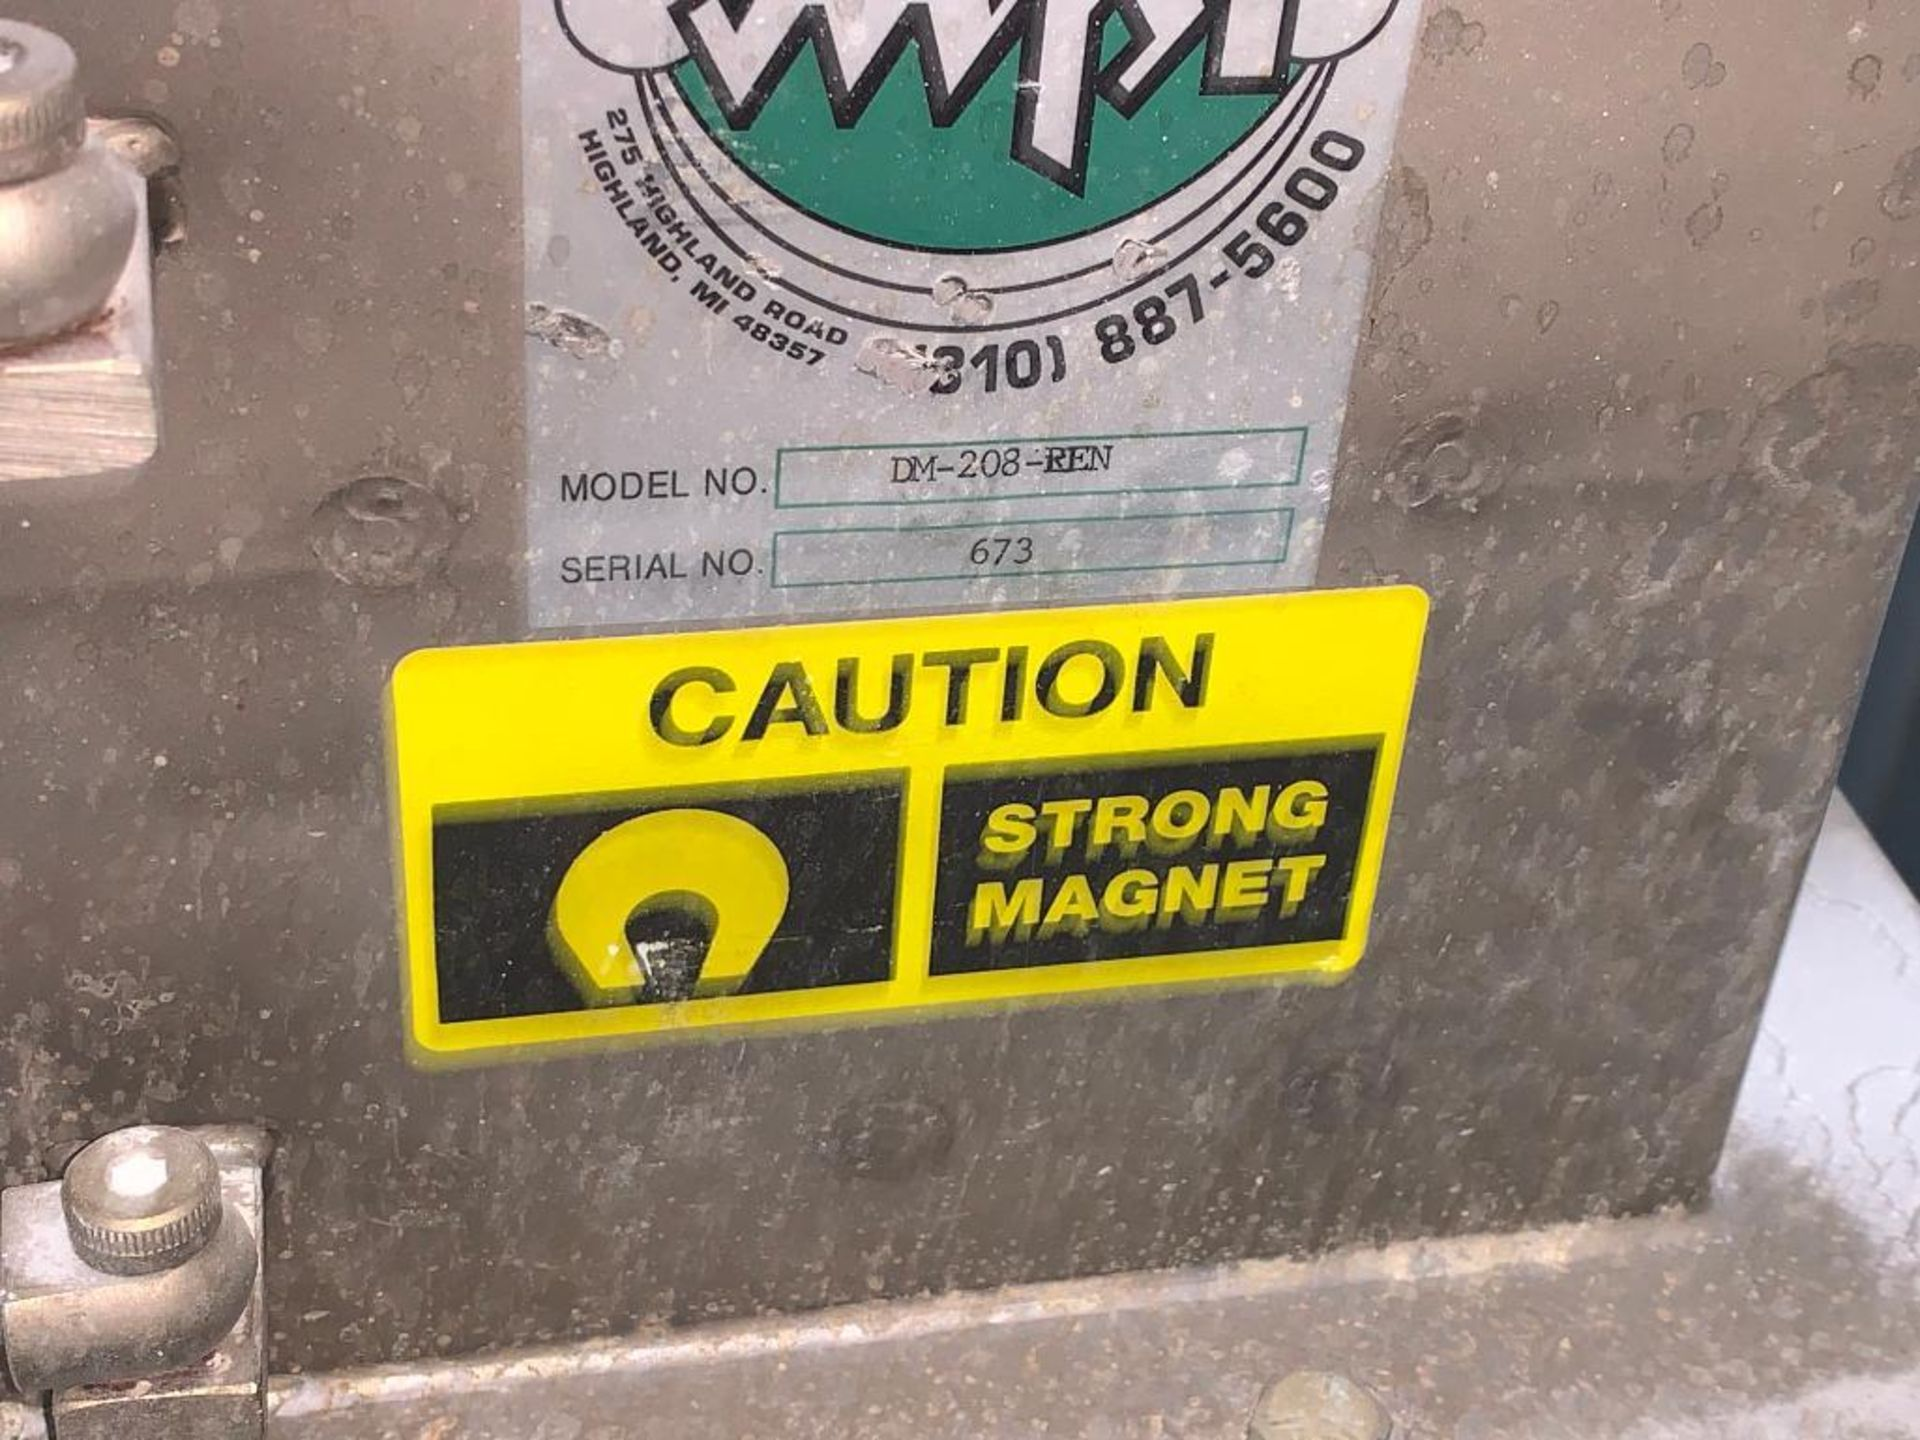 Magnetic Products Inc 8 in. flow through magnet - Image 2 of 4